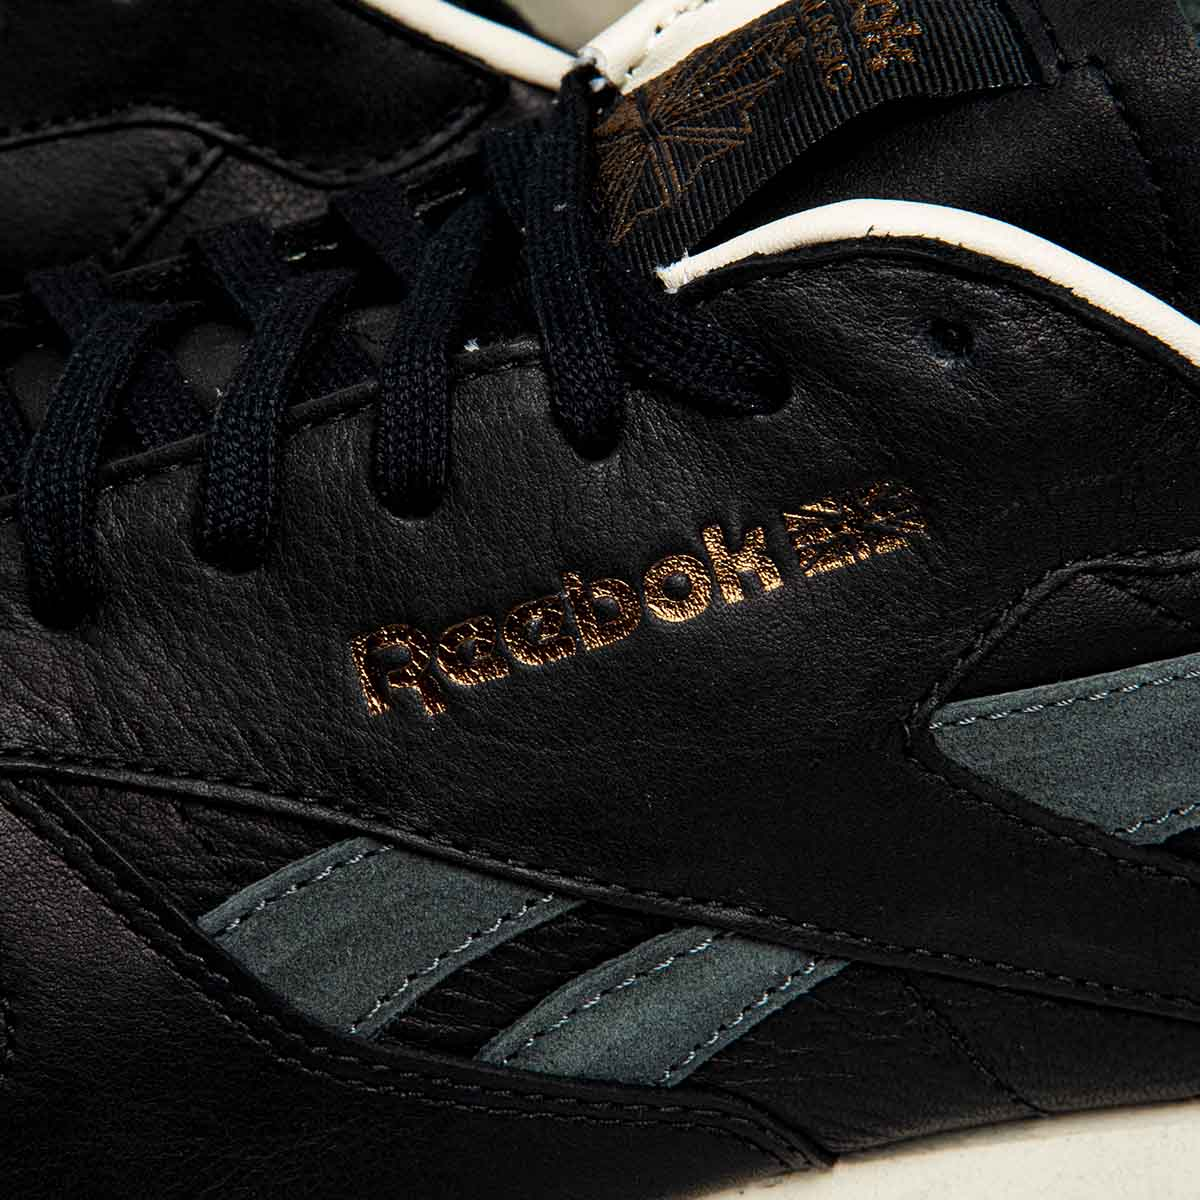 987cac01f32 ... Sneakers buty Reebok Classic Leather LS black   burnt sienna   ashgrey  BS5079 ...